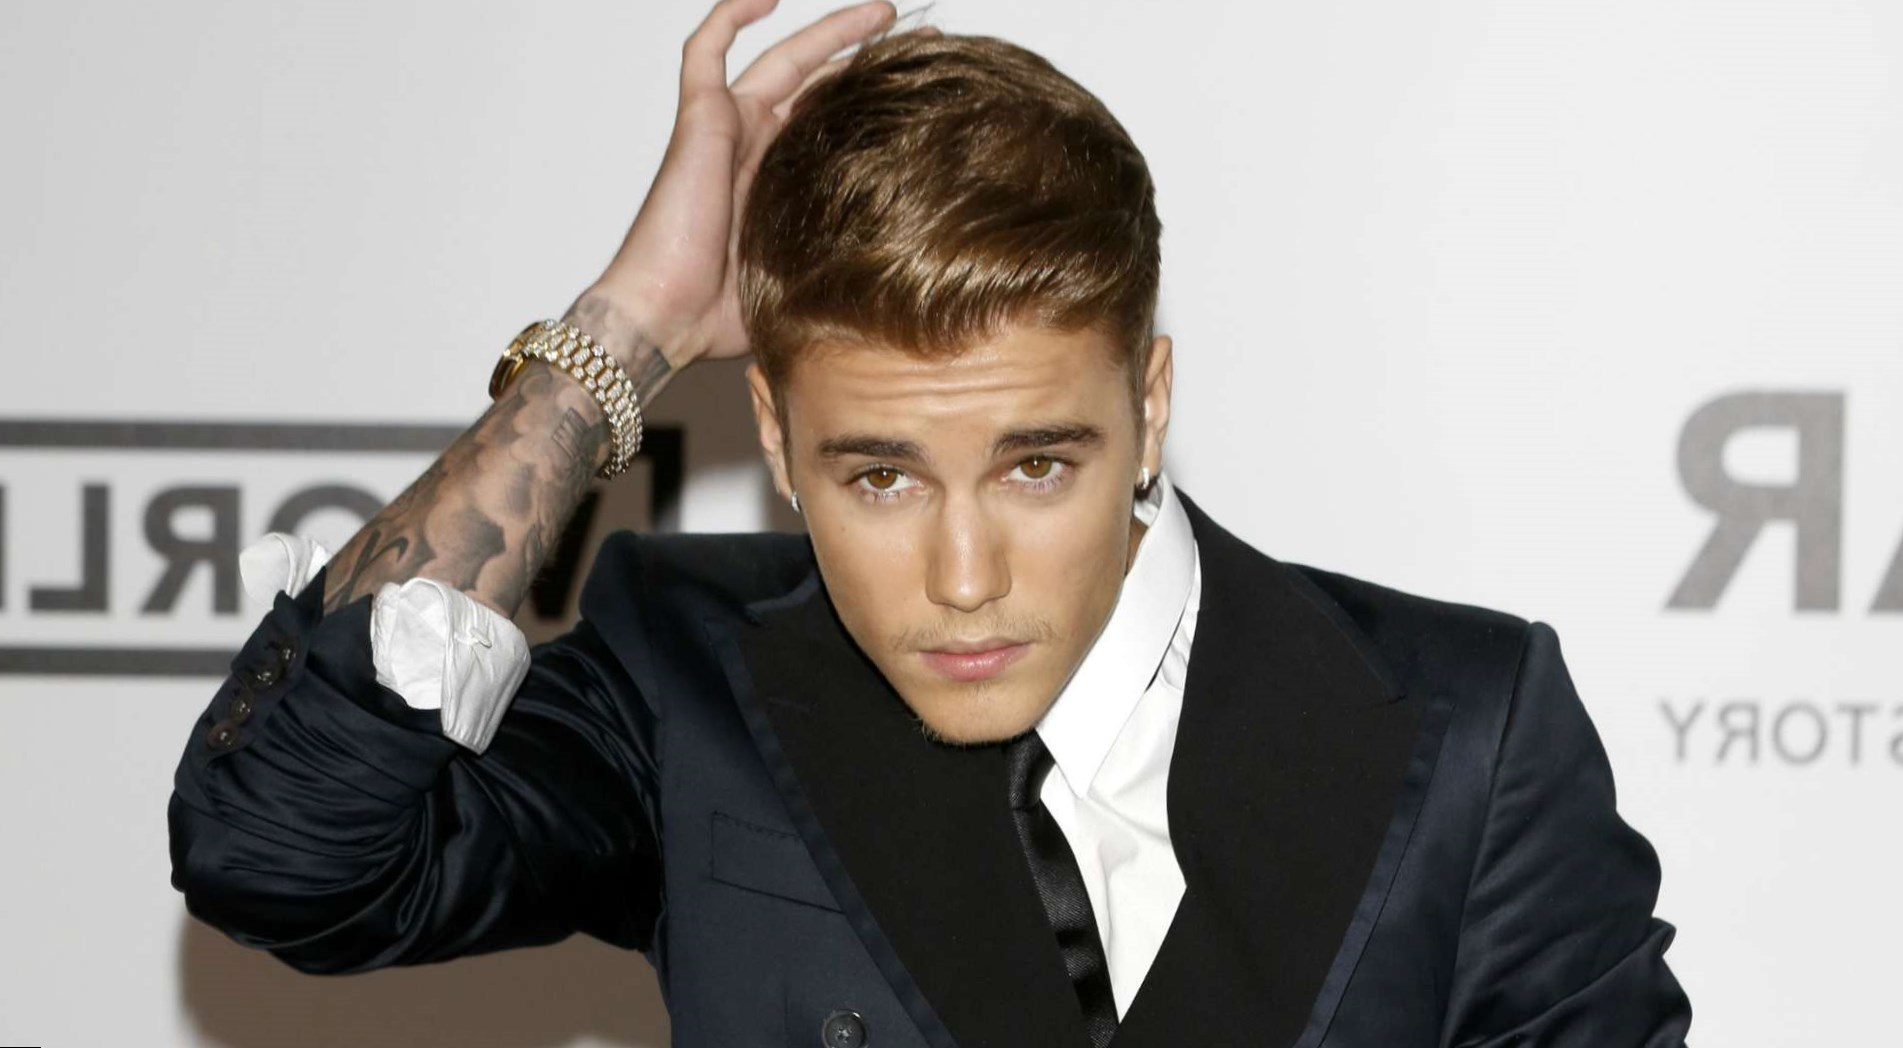 Justin Bieber Celebrity Hair Changes